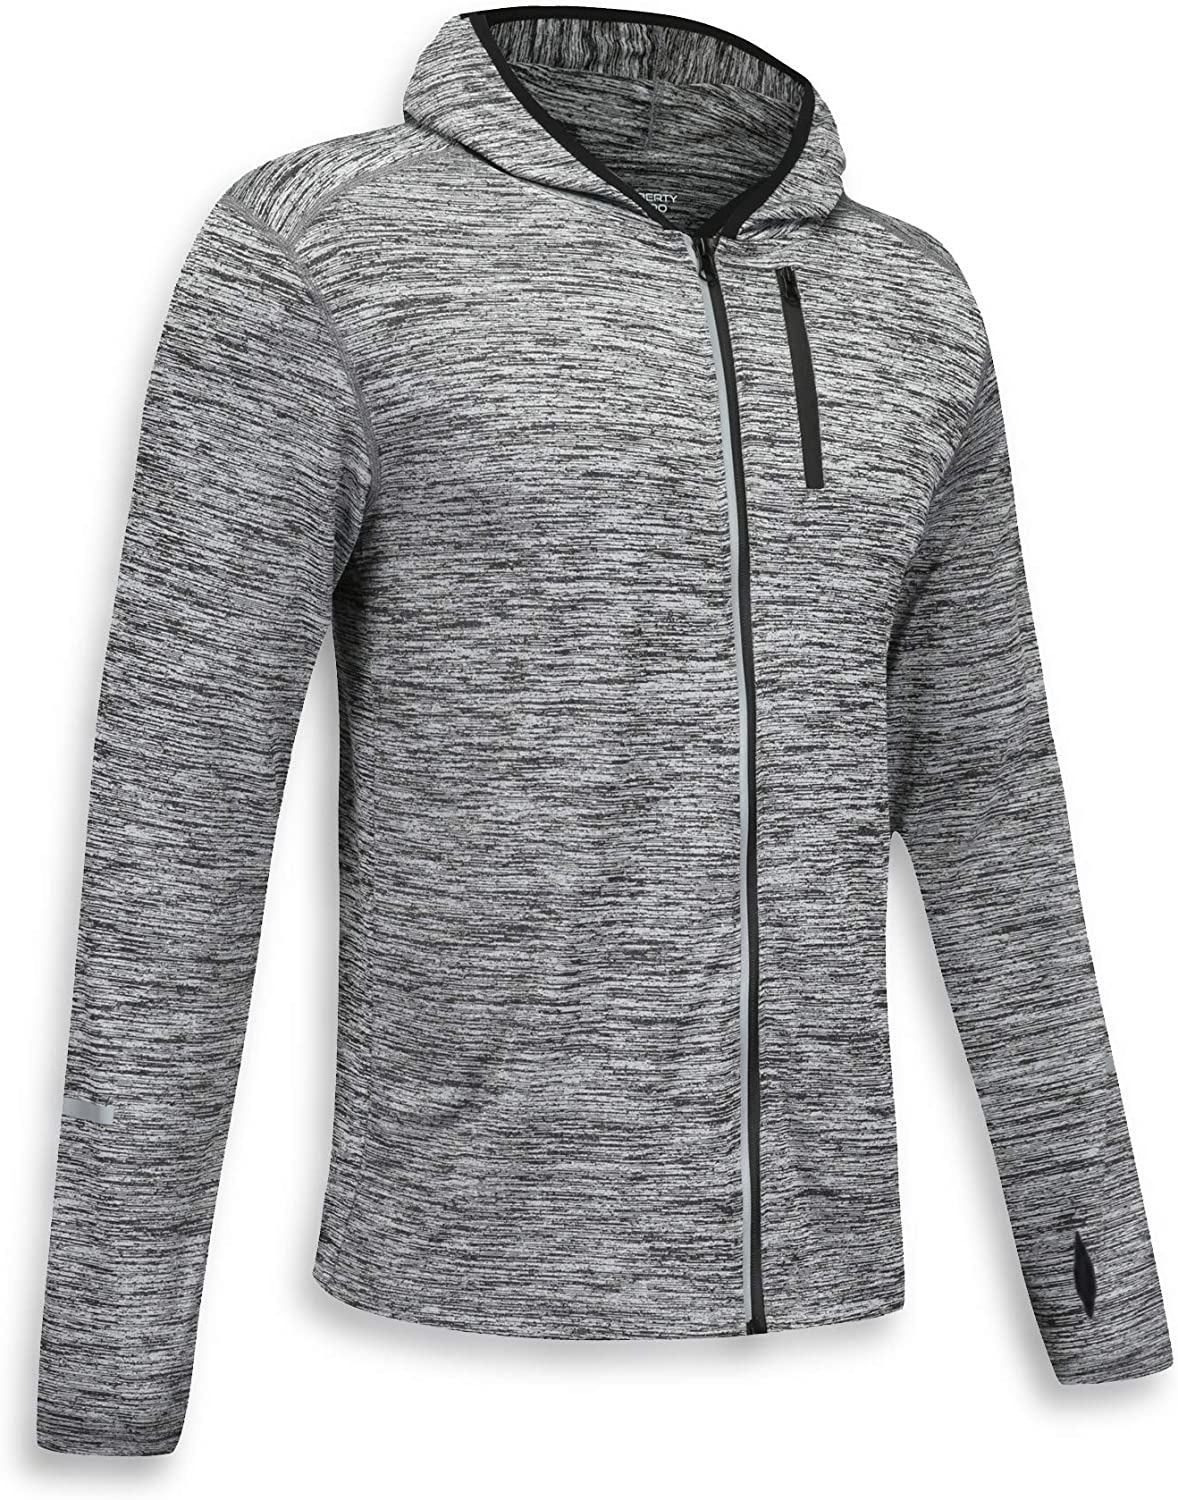 3 Pack Men's Long Sleeve Active Zipper Shirts Quick Dry Pullovers, Athletic Running Cycling Gym Tops Bulk Bundle